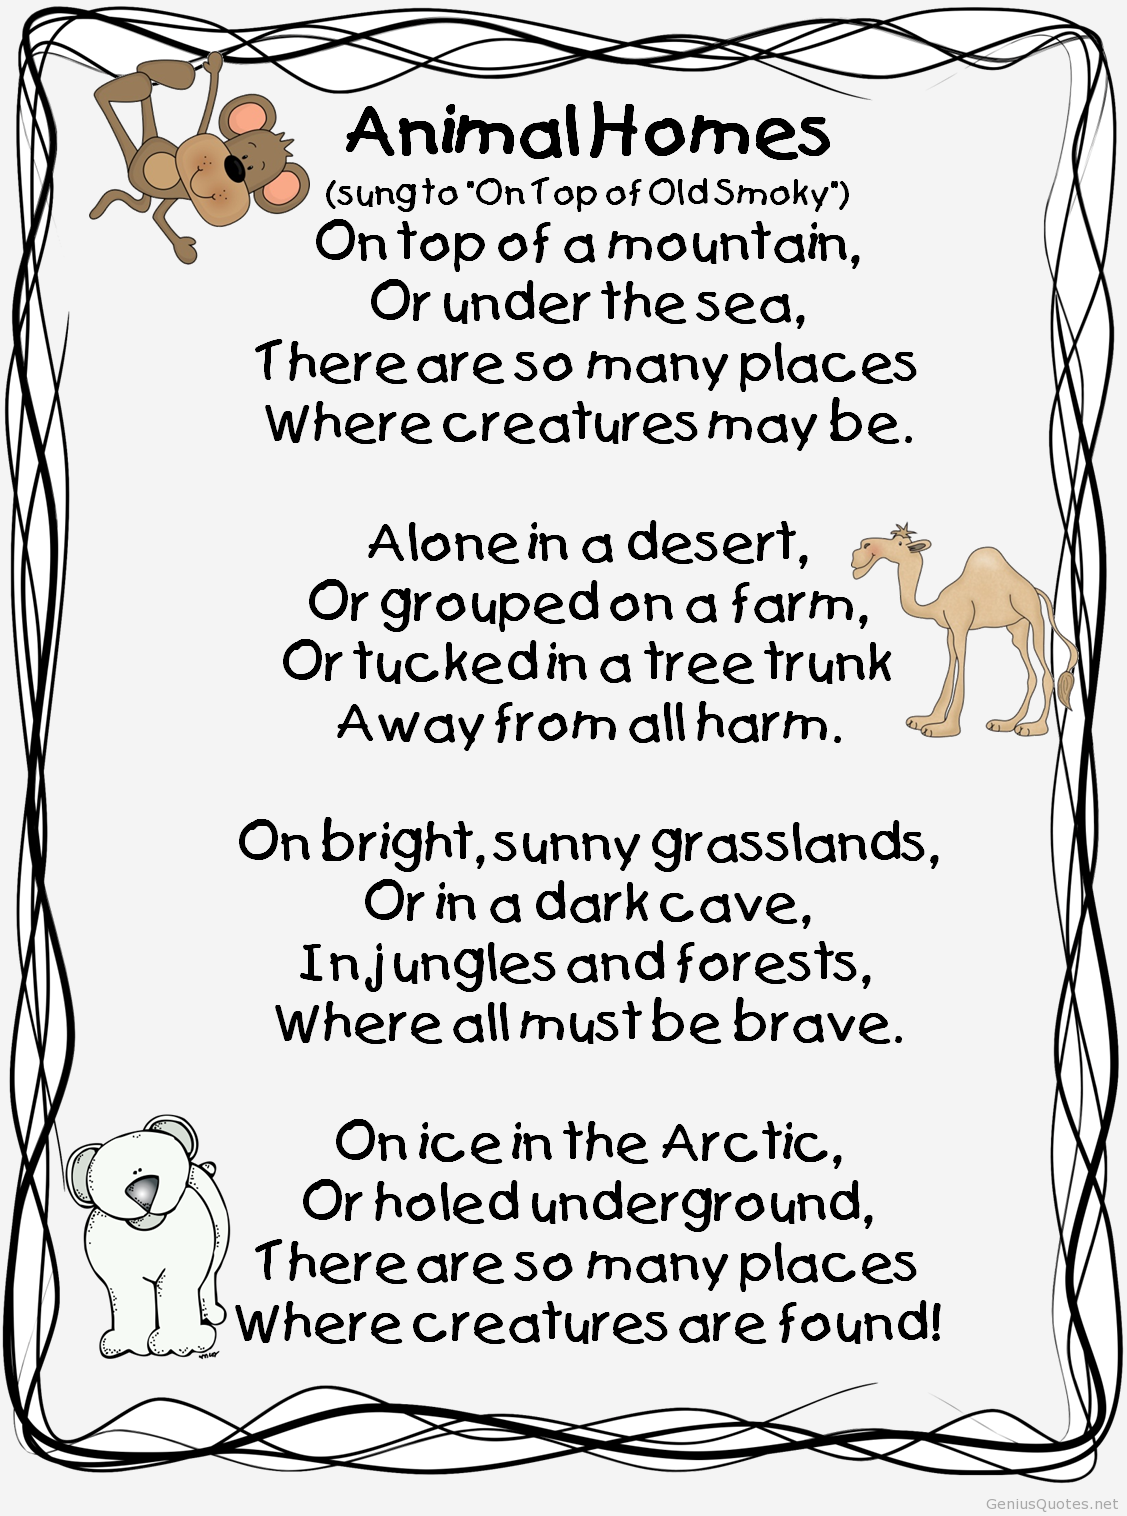 Poem about animals homes  First grade science, Kids poems